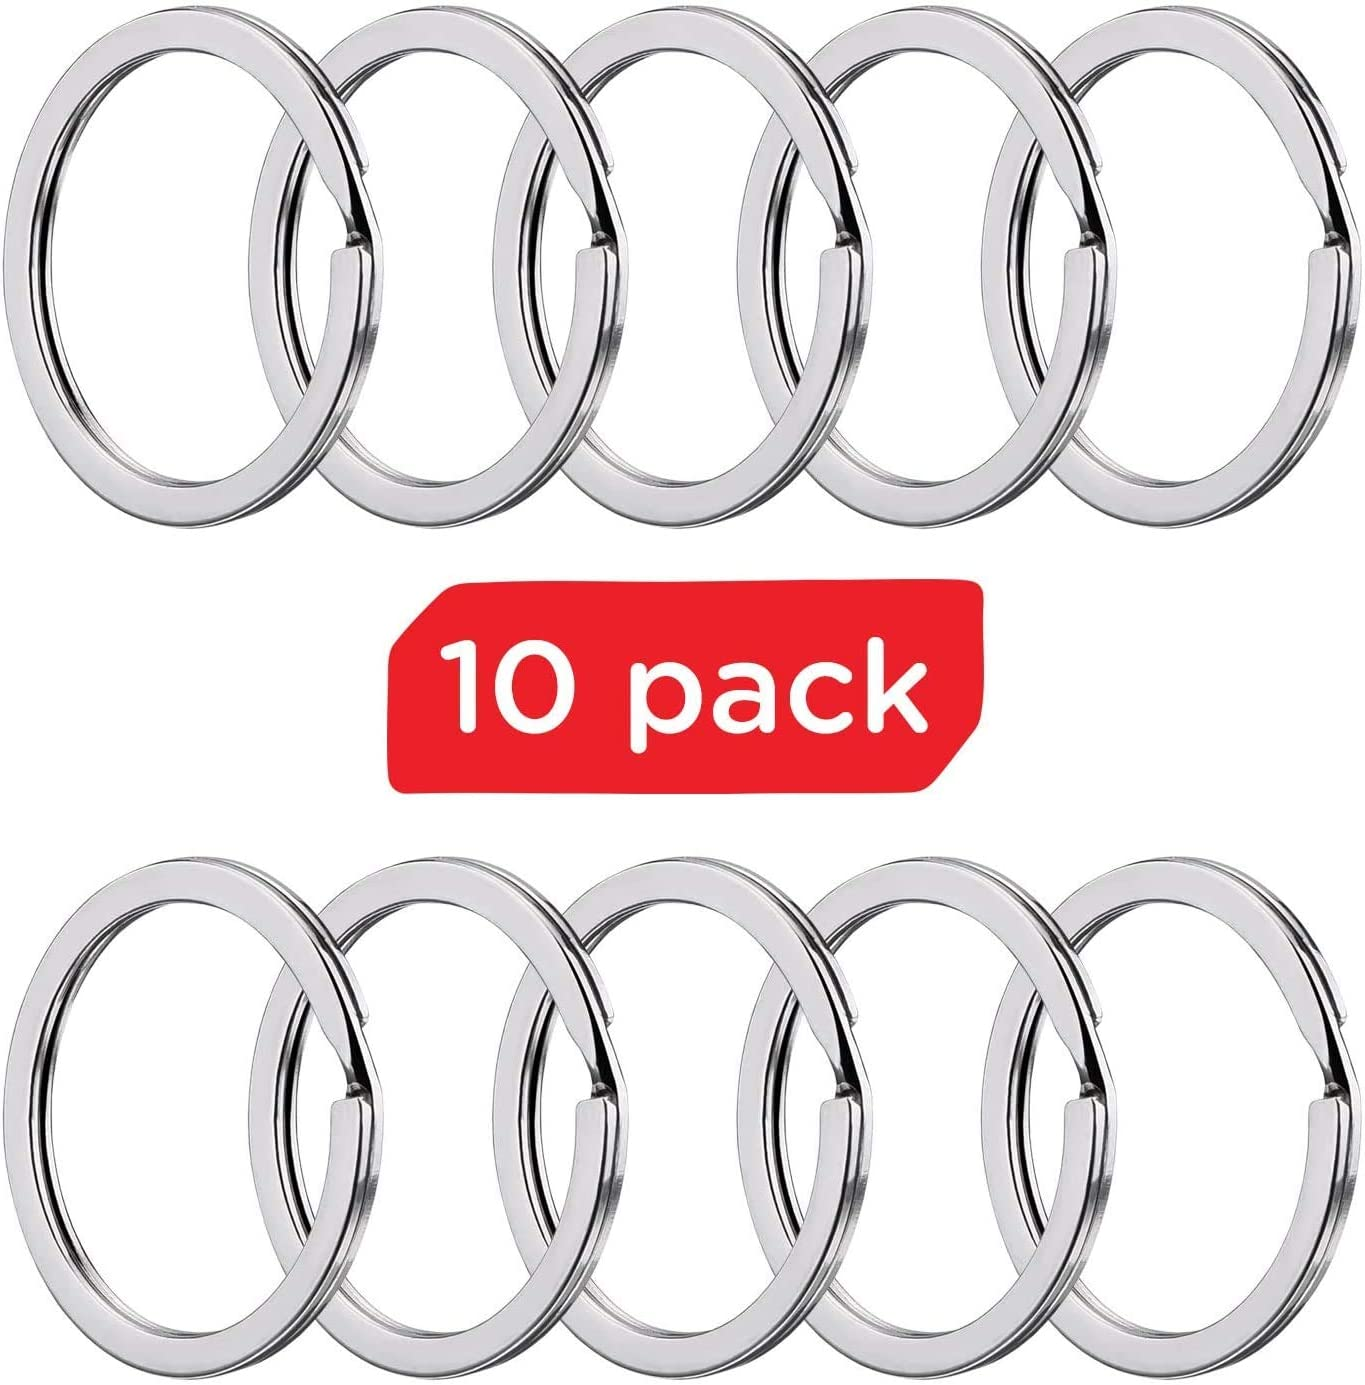 Silipac Large Key Ring Cable Wire Car Keychains Keyrings Loop Heavy Duty Tag Keepers Tough Binding Carabiner Rings Holder Stainless Steel Durable Organize 4pcs 1.5mm 6,3, Gold